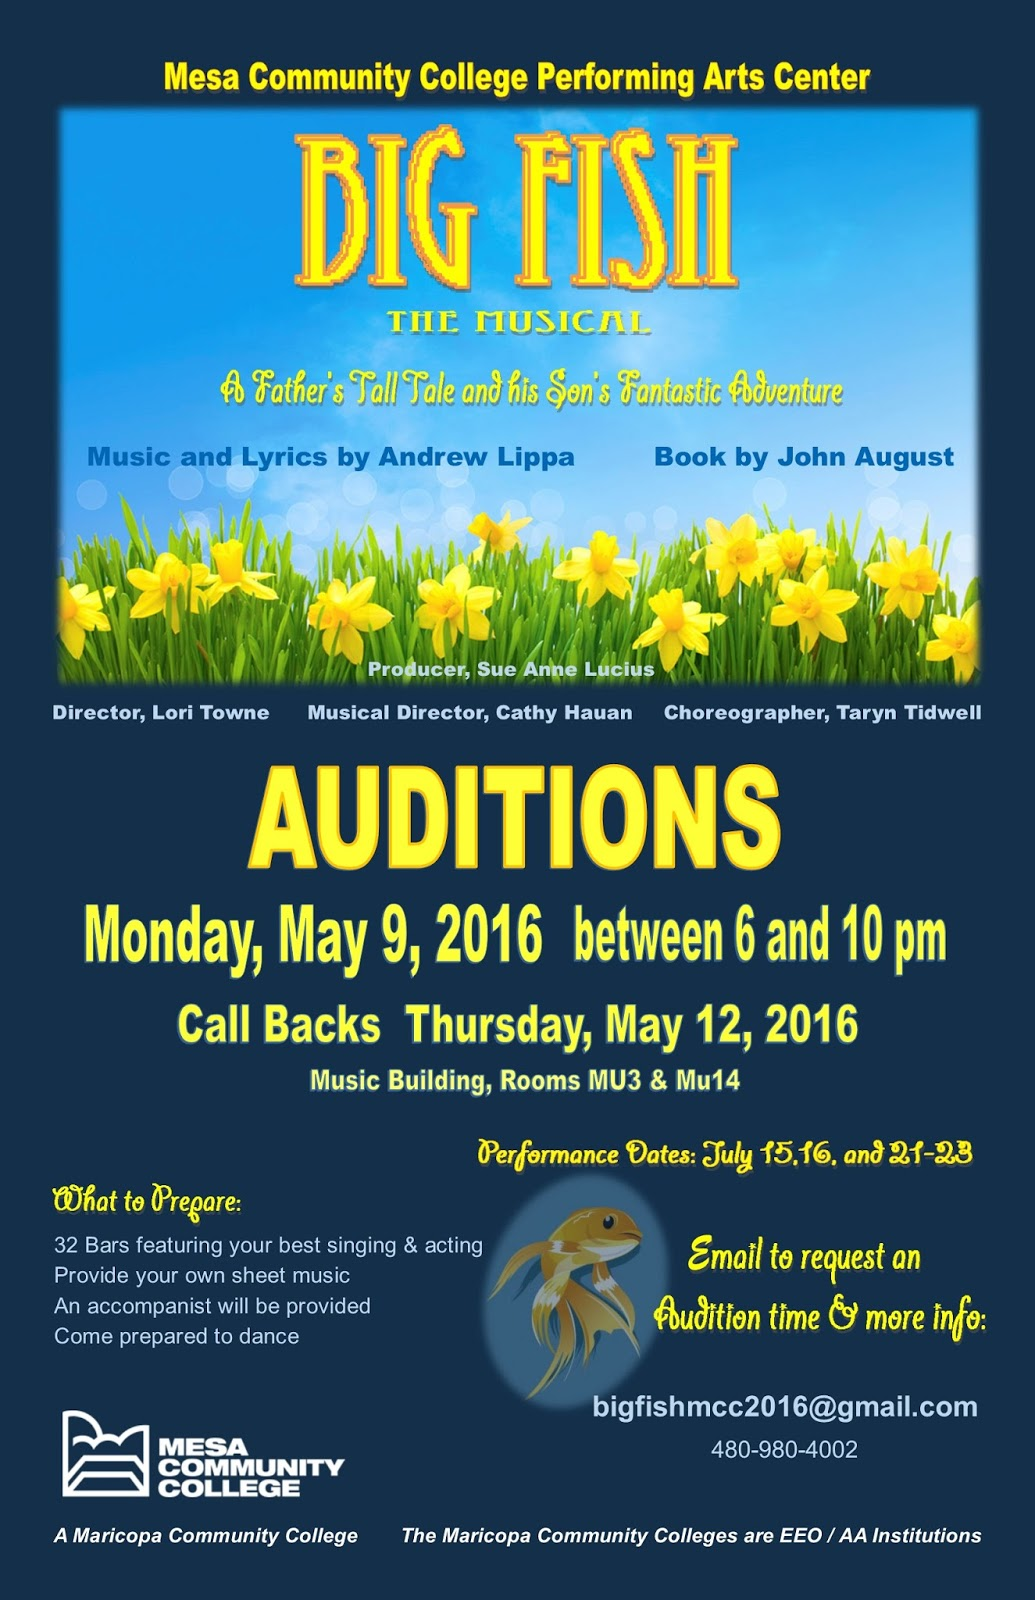 PHX Stages: audition notice - BIG FISH - Mesa Community